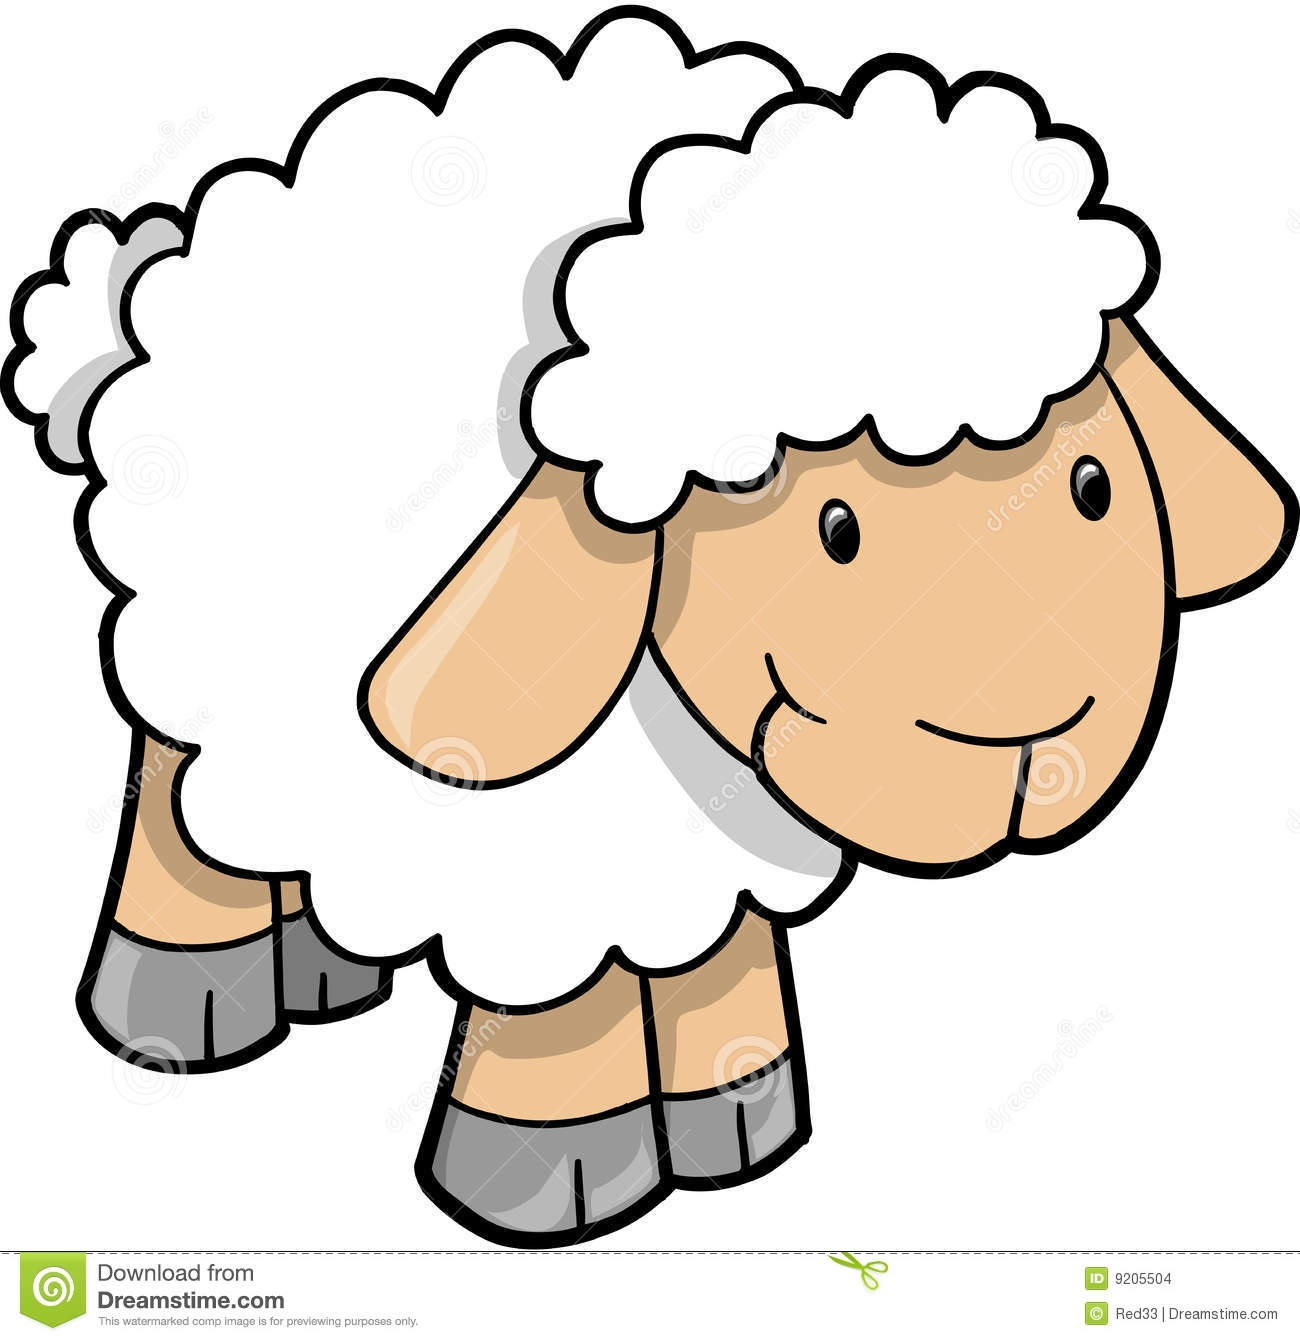 Awesome lamb gallery digital. 3 clipart sheep